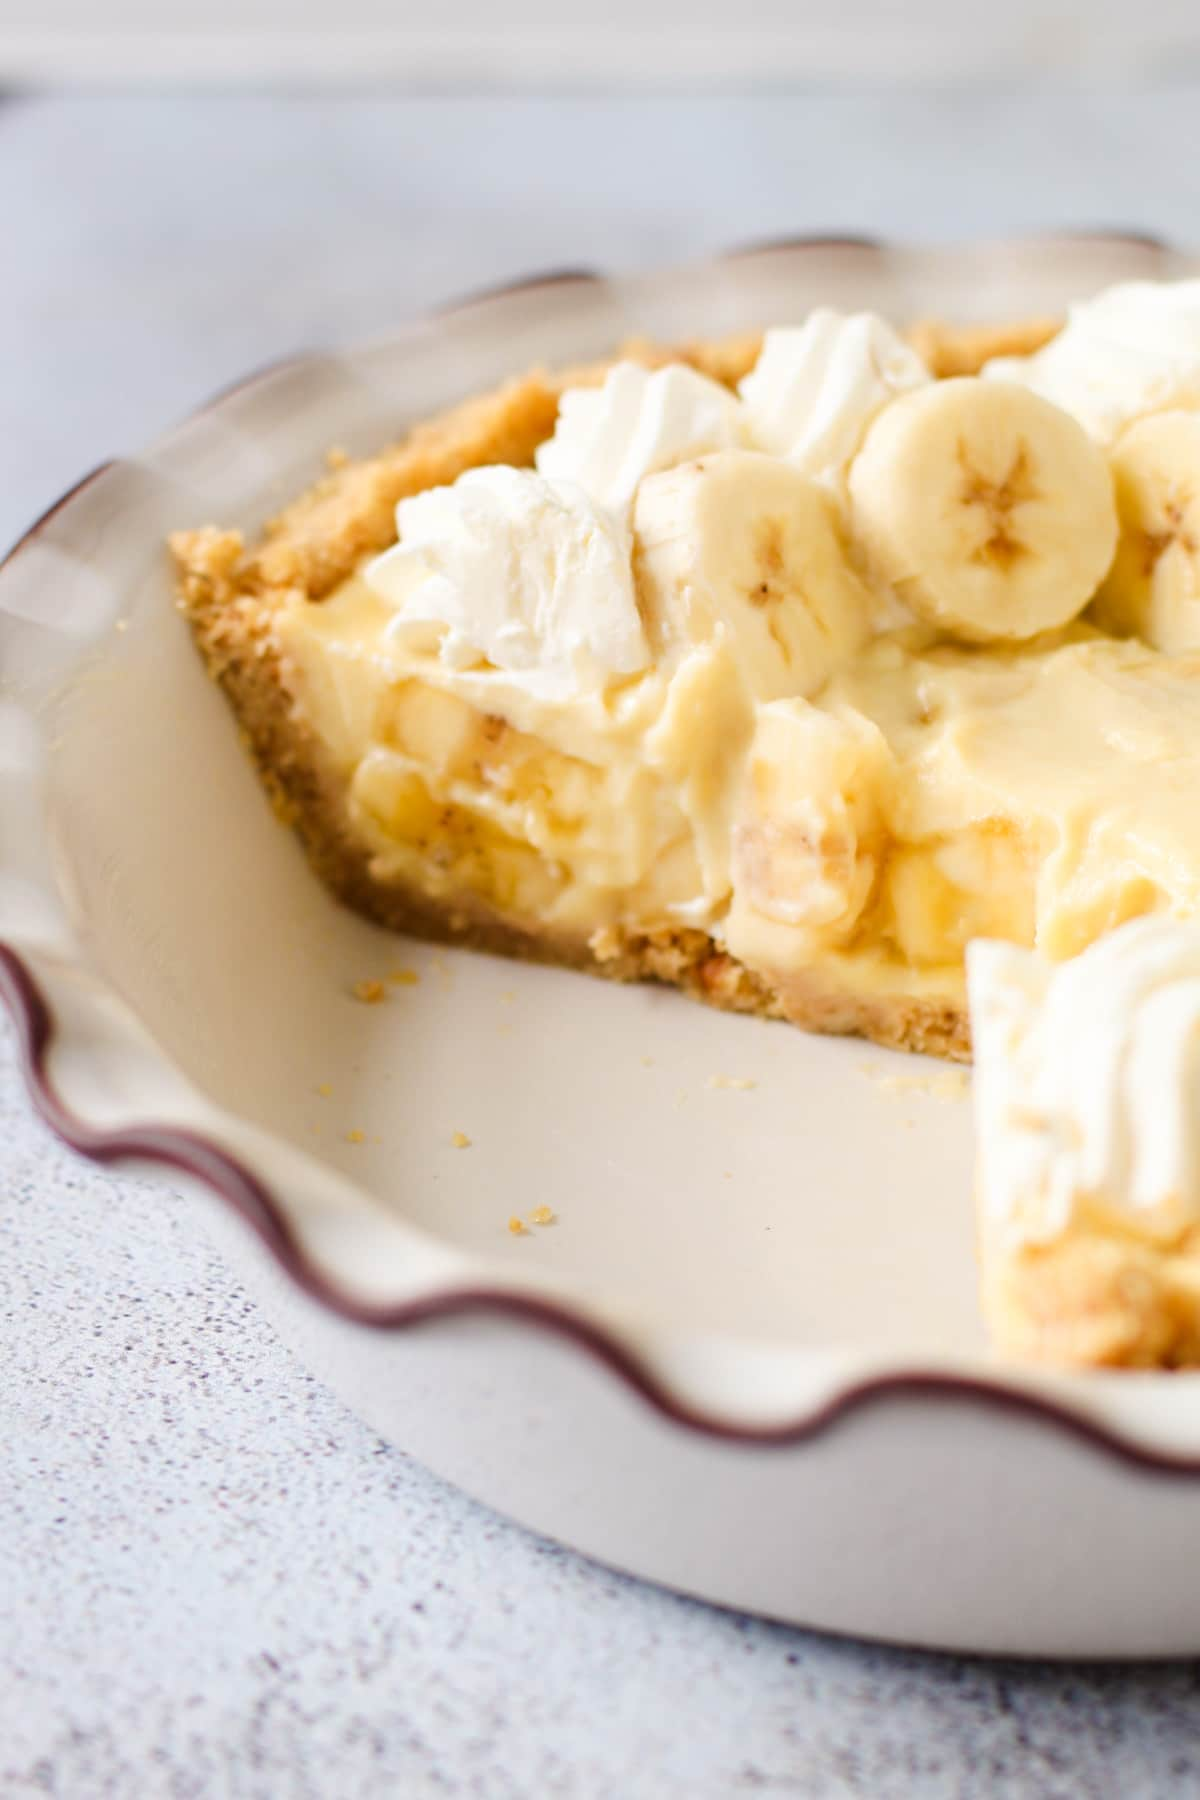 Banana cream pie with vanilla wafers in a pie plate.